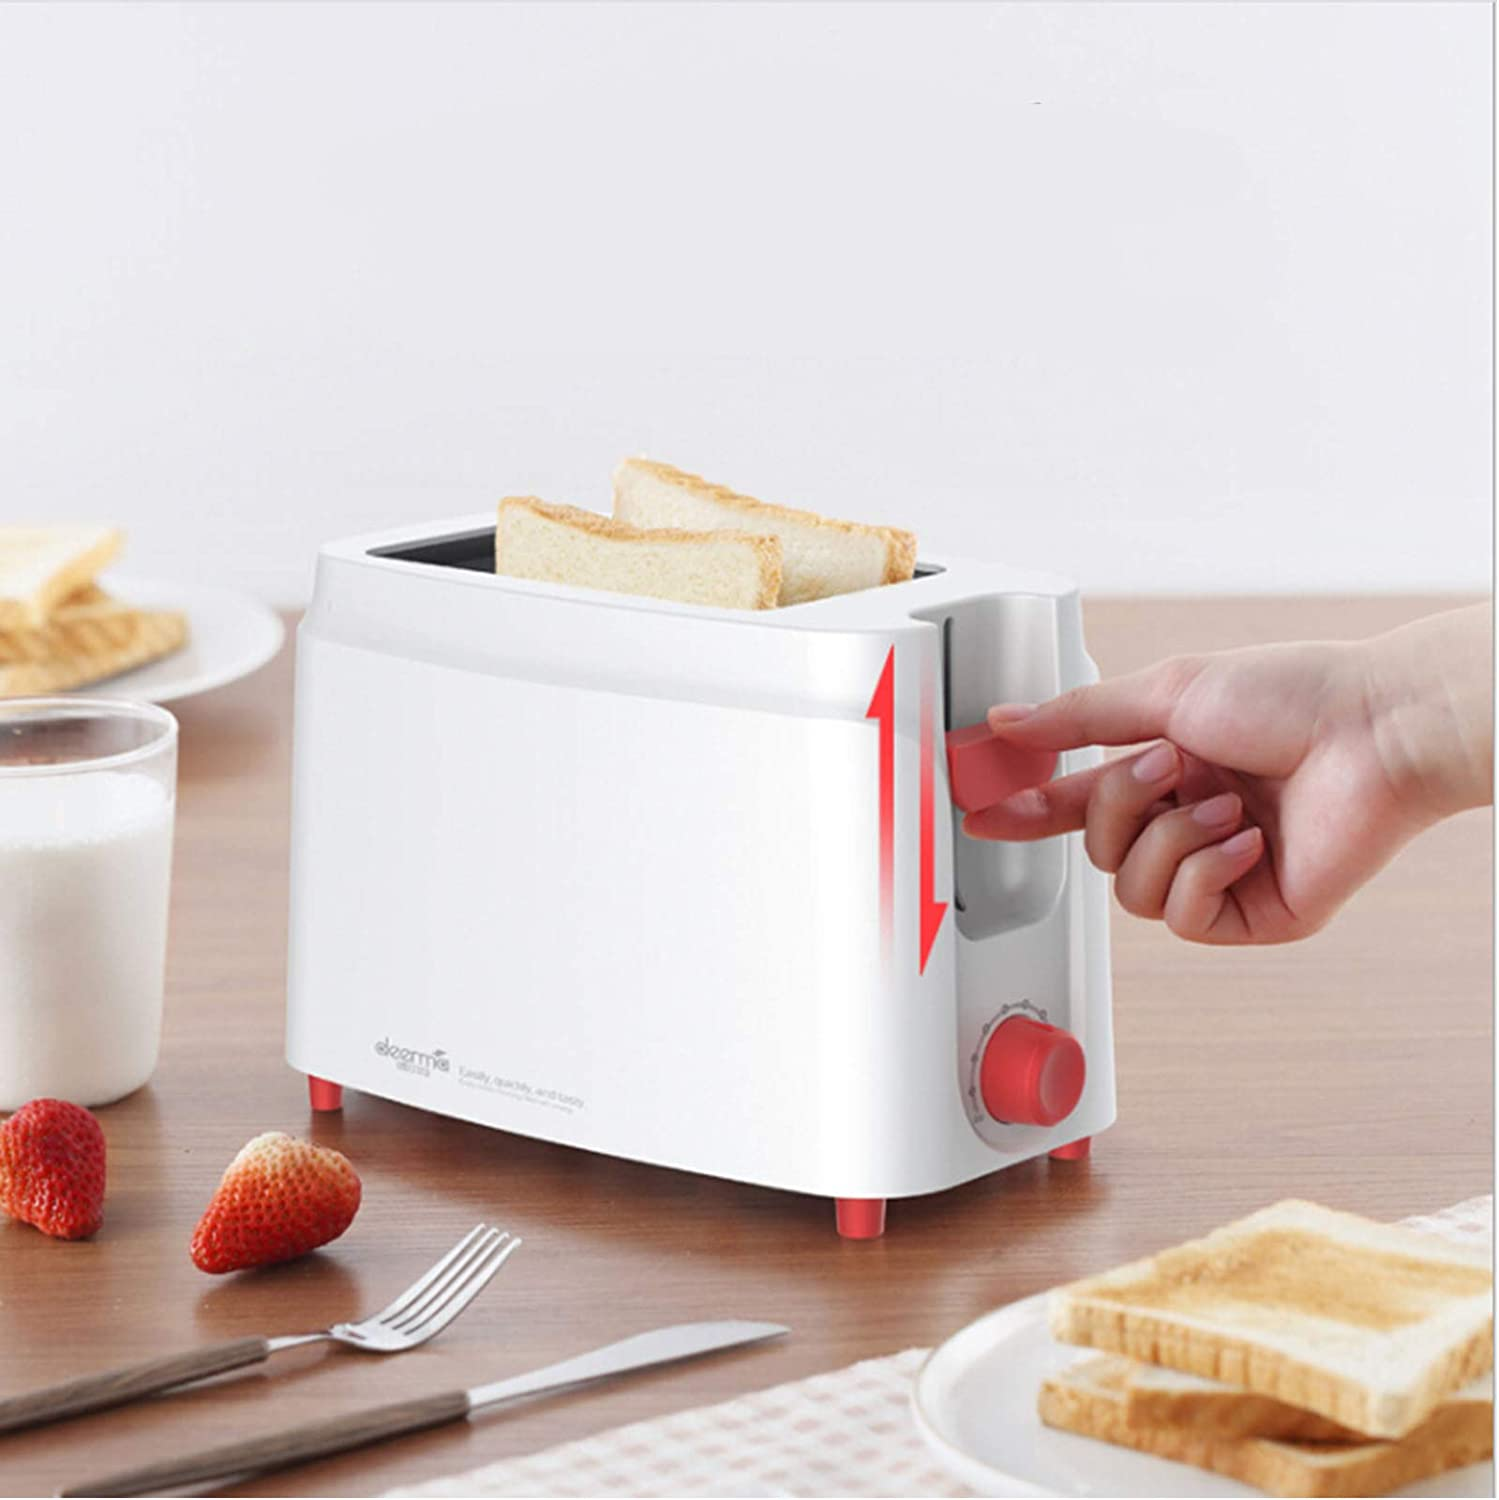 Toasters 2 Slice Best Rated Prime - White Toaster - Breakfast Maker - 680W Quickly Small Toaster